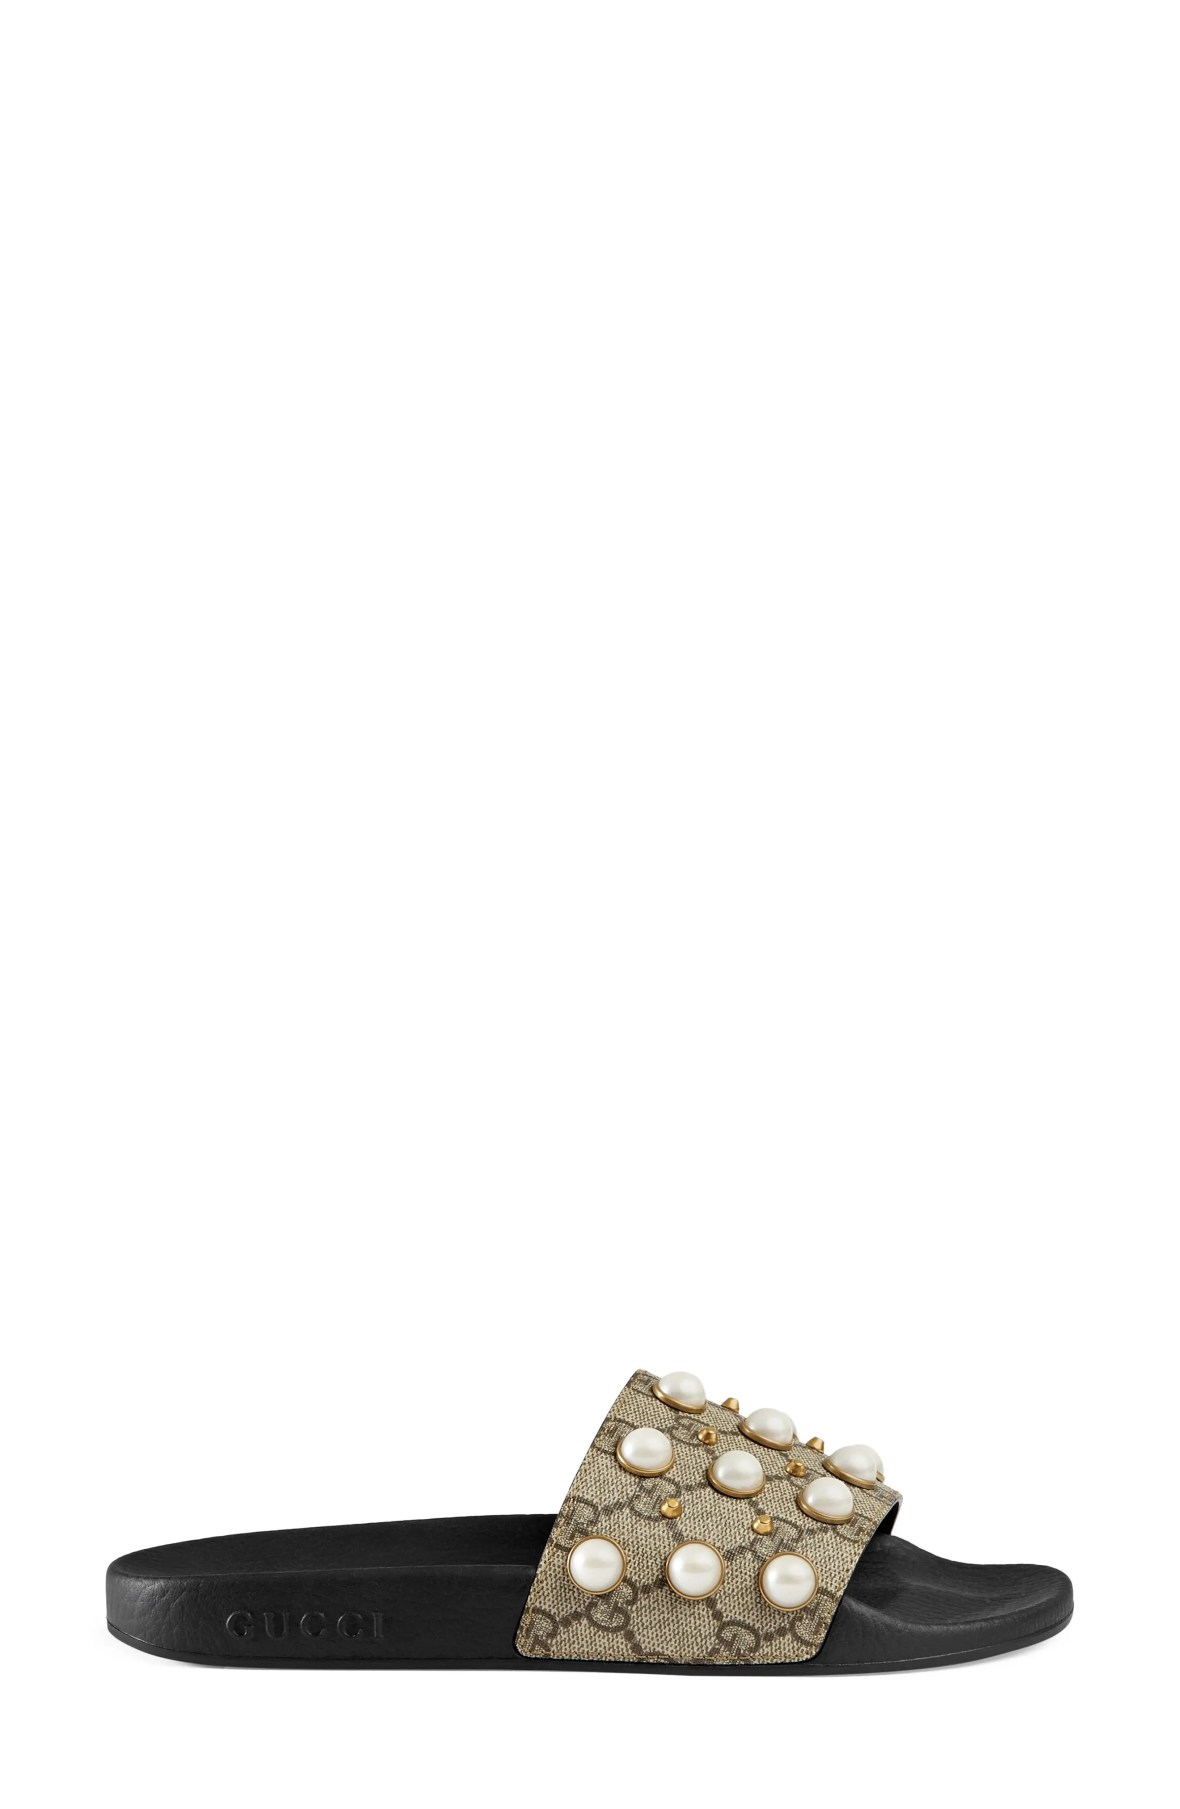 Gucci Pursuit Imitation Pearl Embellished Slide Sandal (Women)